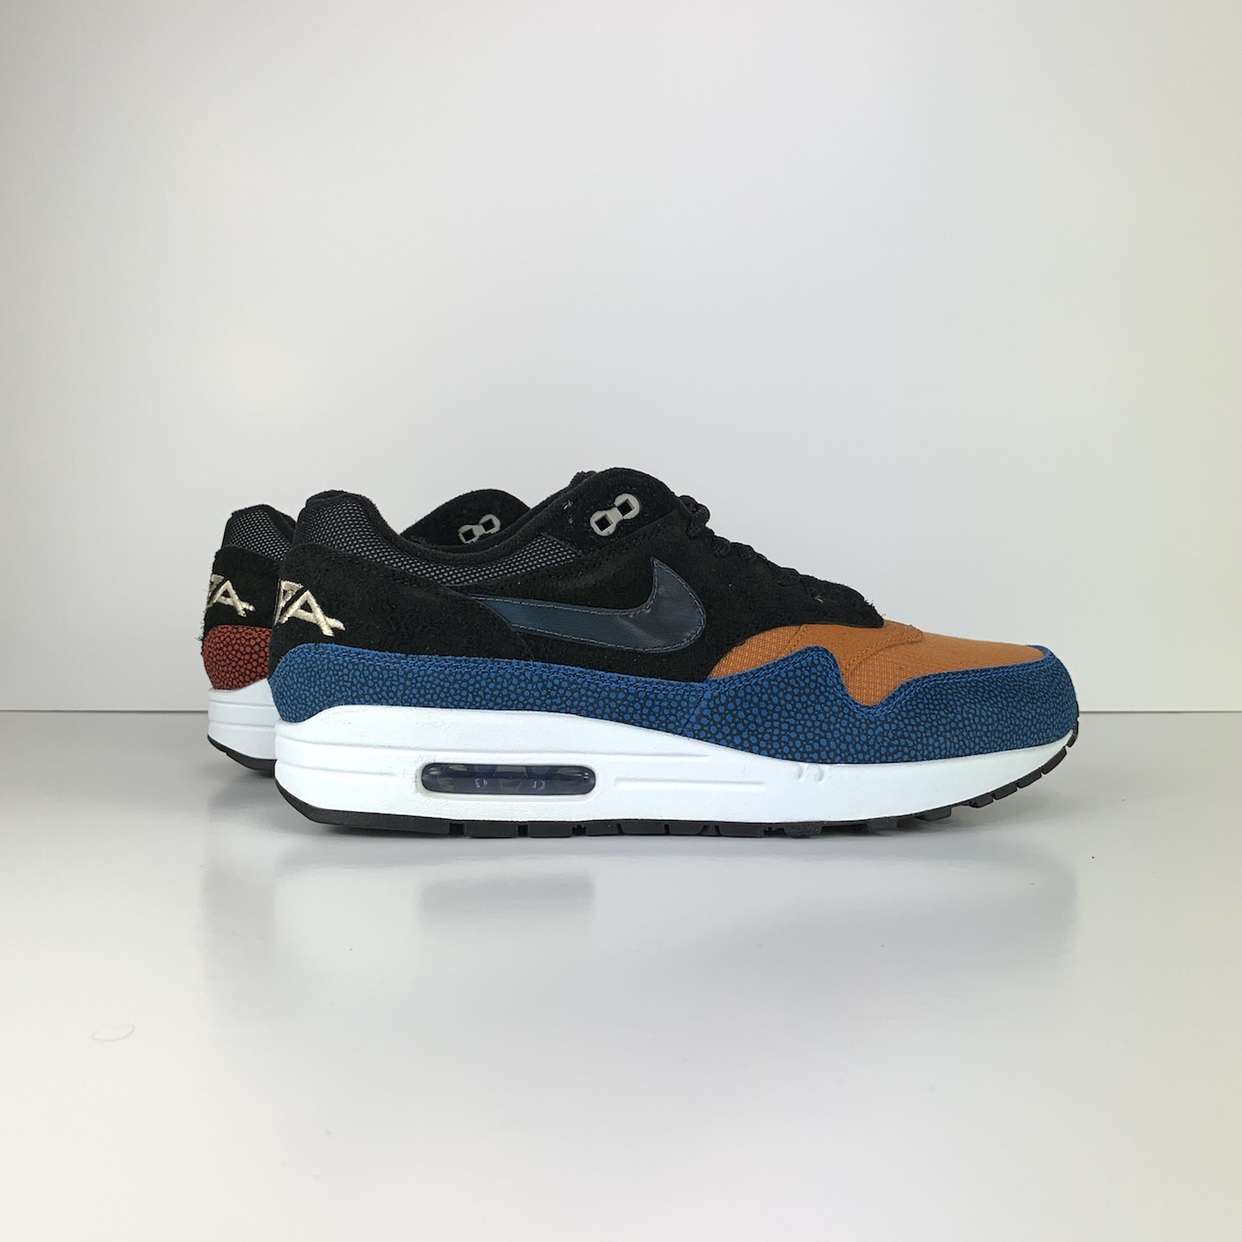 2019 NIKE AIR MAX 1 PREMIUM LTD EDITION X DE'AARON Depop